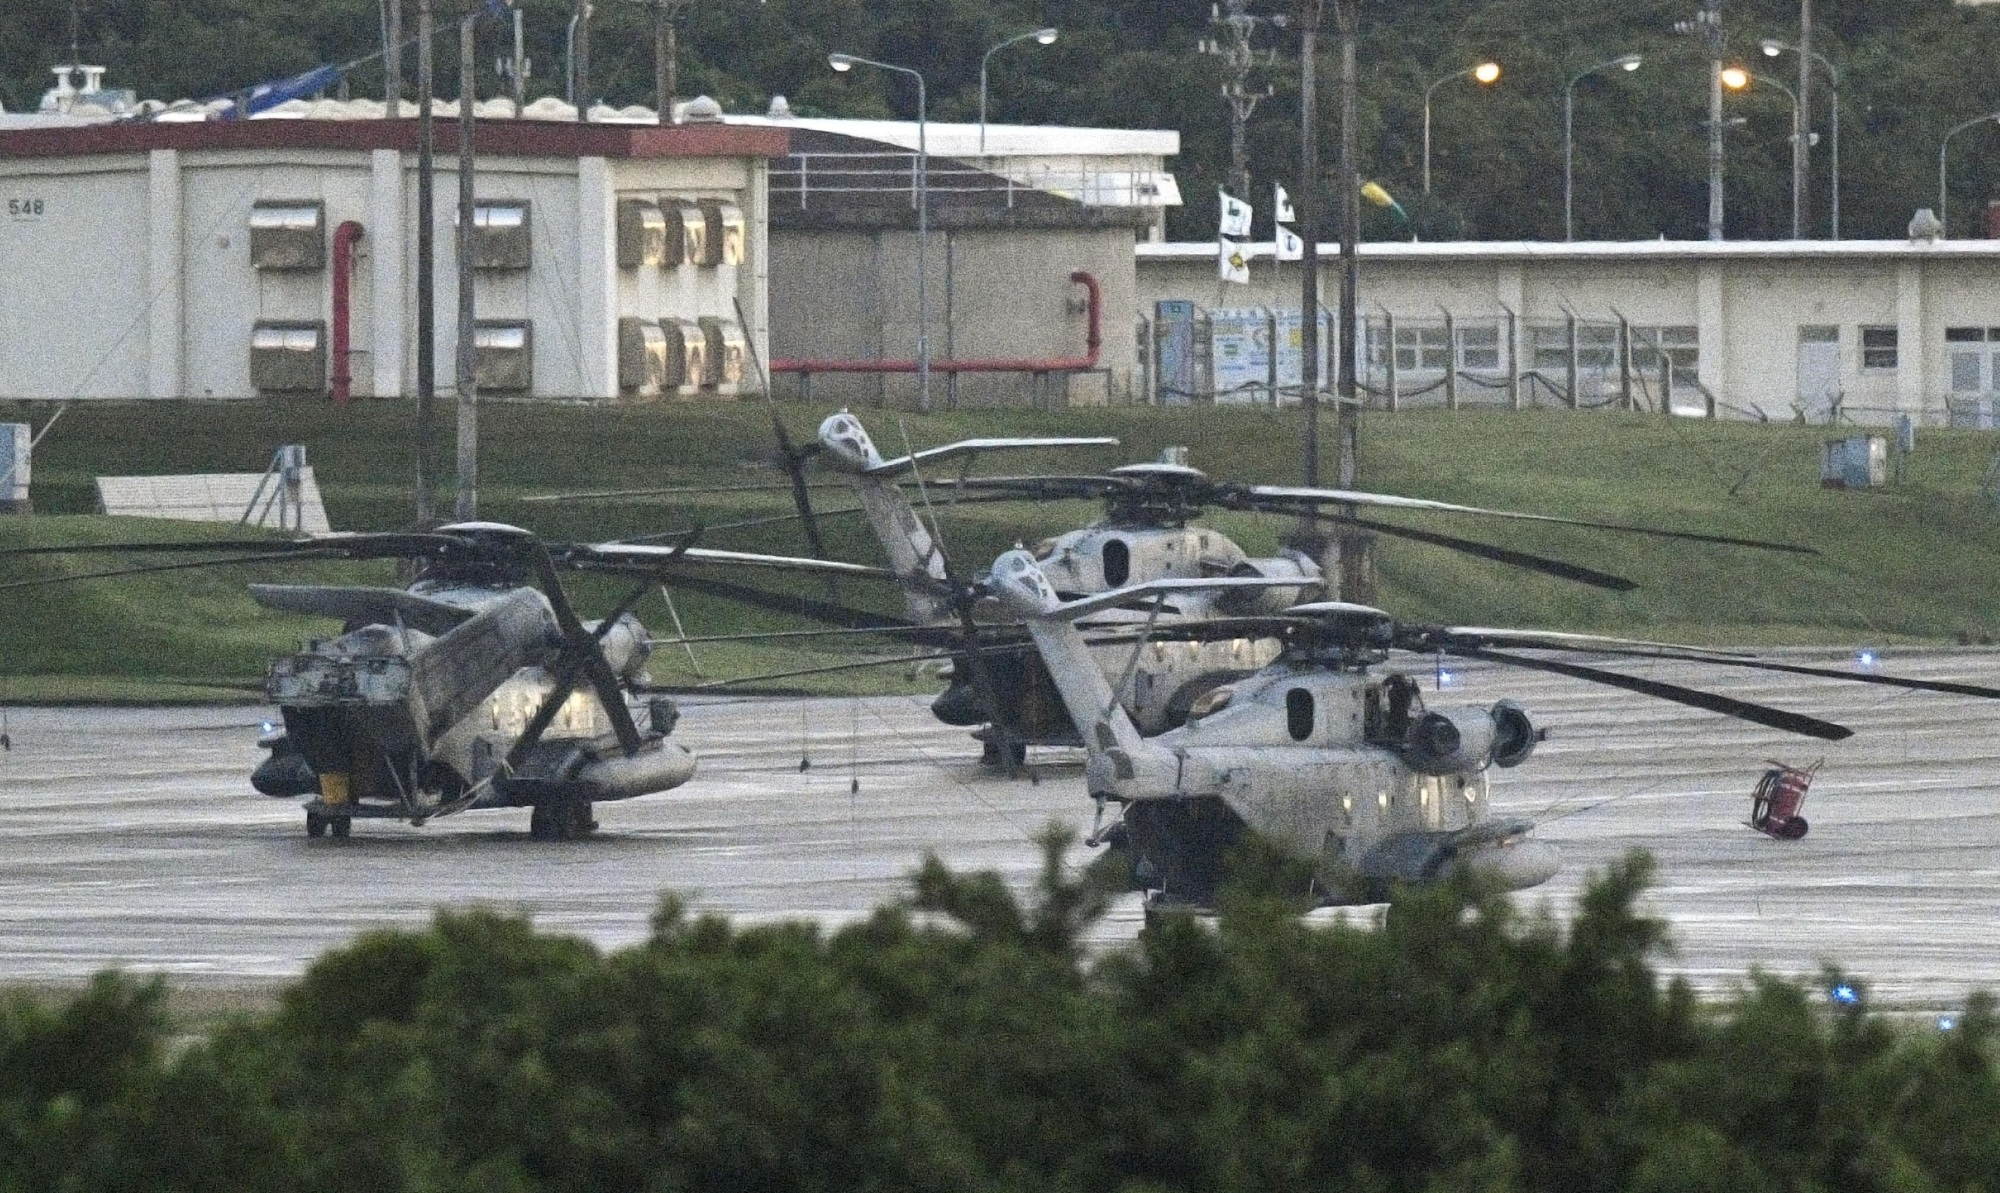 CH-53E helicopters are seen at U.S. Marine Corps Air Station Futenma in Ginowan, Okinawa Prefecture, on Tuesday. The U.S. Marine Corps said it will resume flight operations of the helicopters on Wednesday. | KYODO